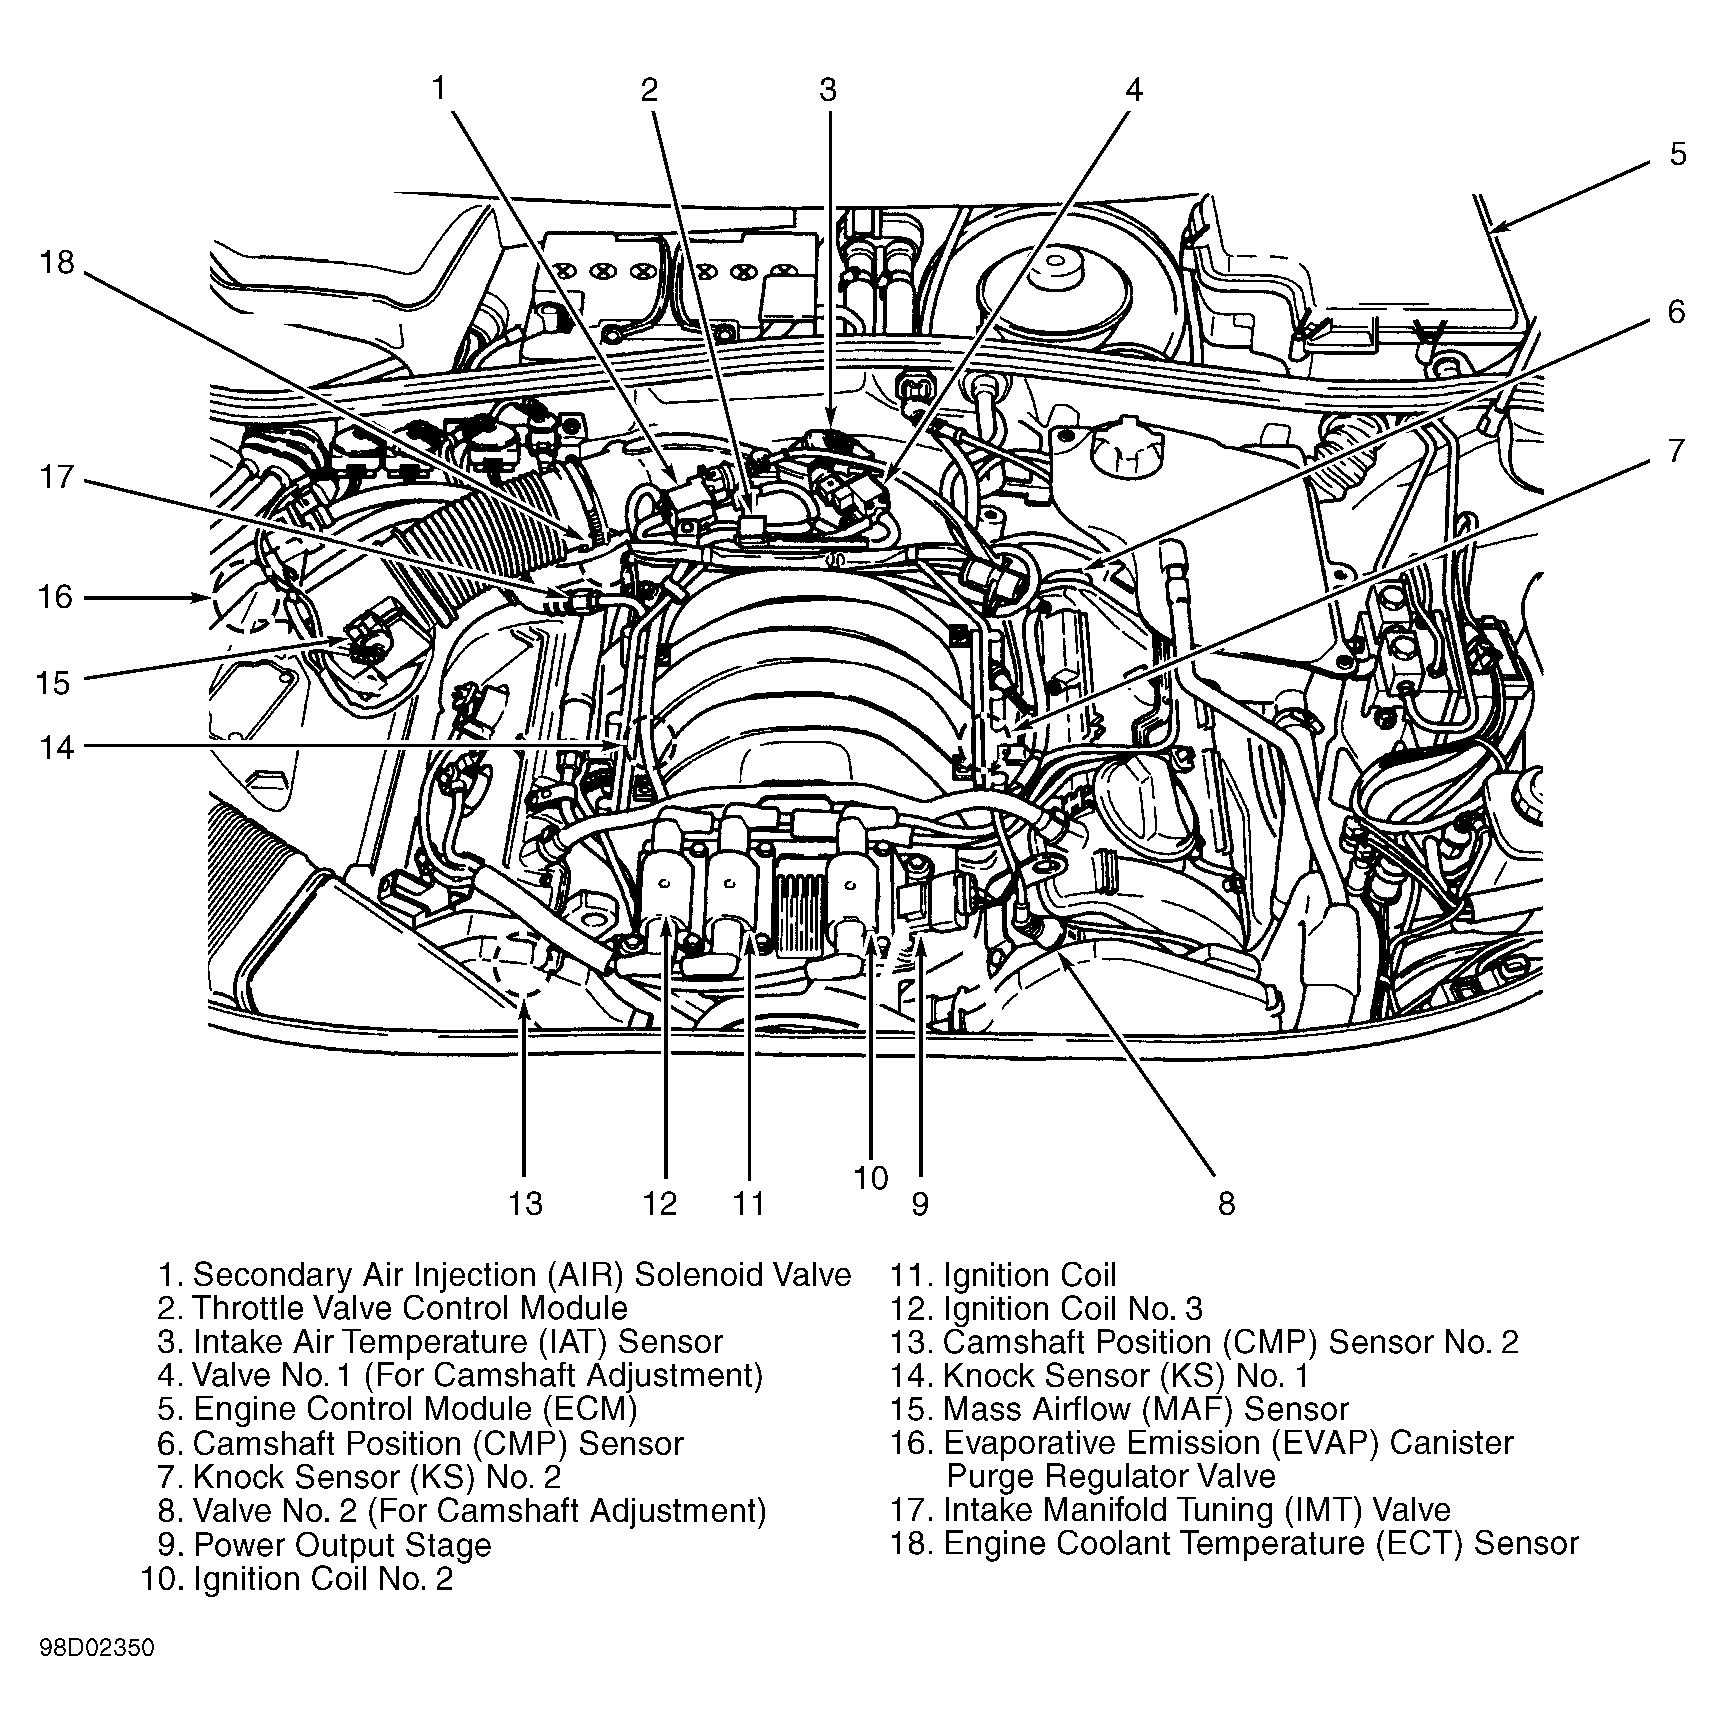 Transmission Circuit Schematic 2007 Suzuki forenza 2006 Dodge Charger 2 7 Engine Wiring Diagram Wiring Of Transmission Circuit Schematic 2007 Suzuki forenza